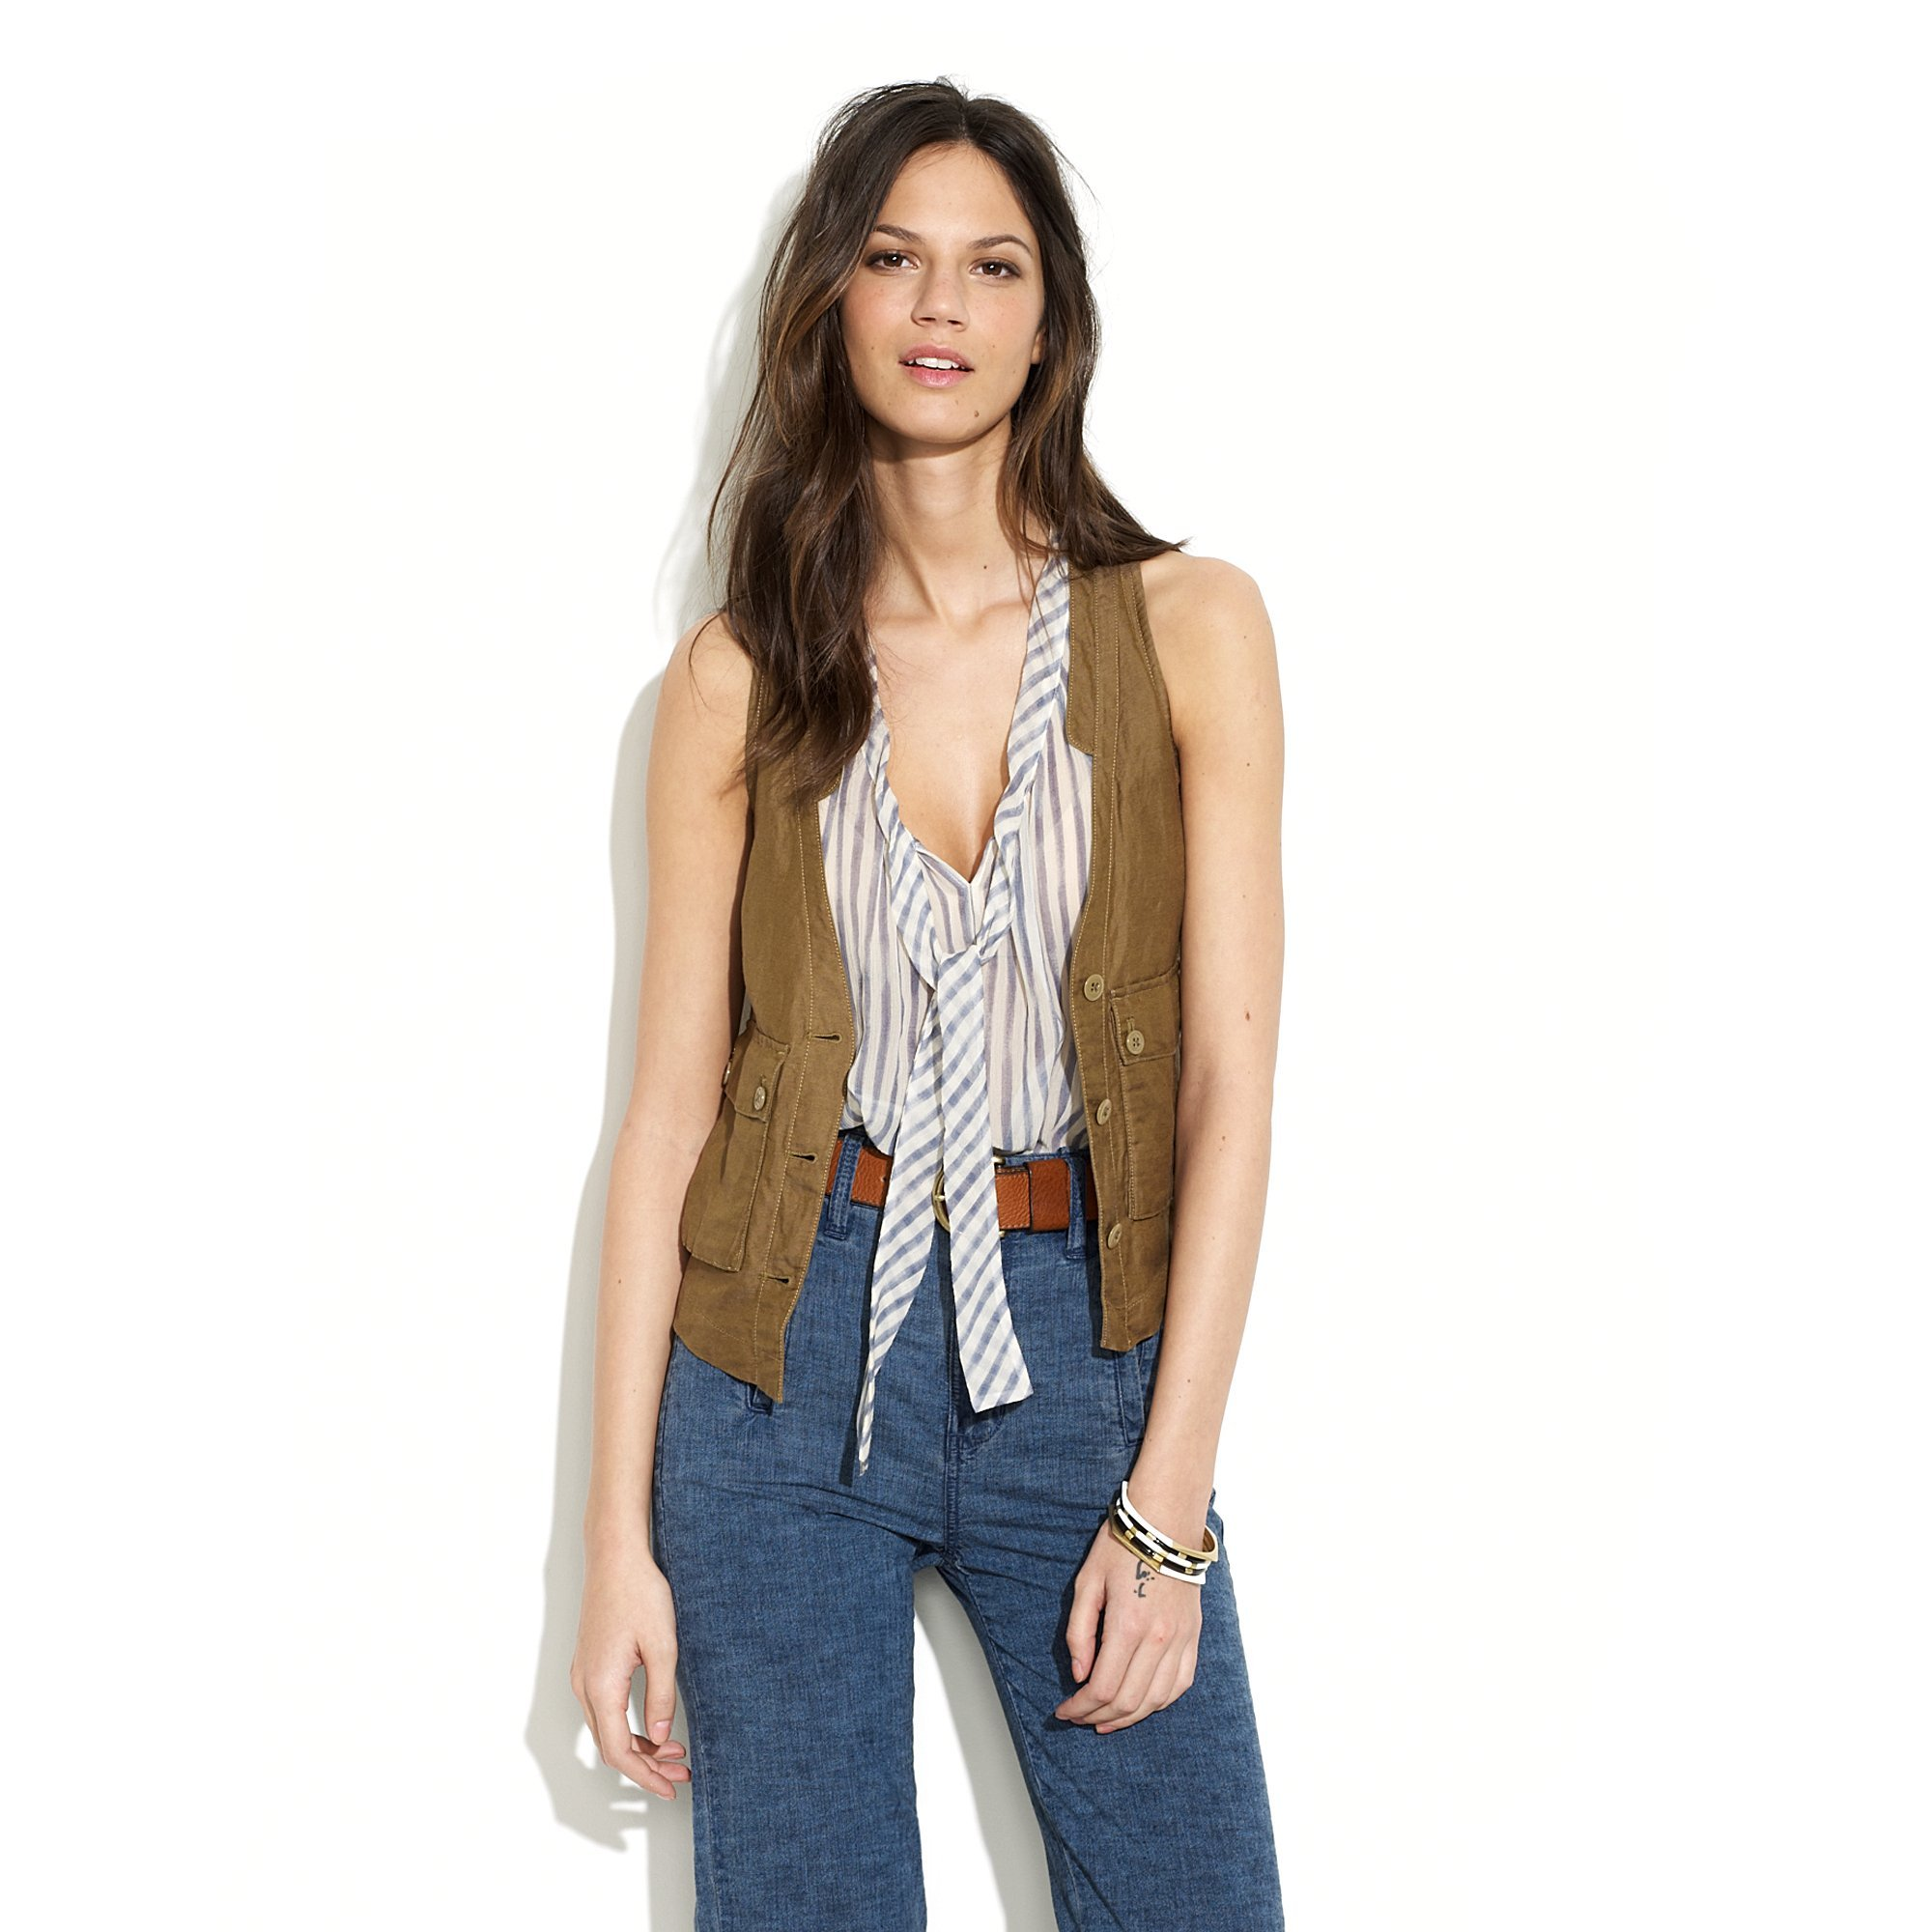 454994ae99762 Lyst - Madewell Safari Vest in Green